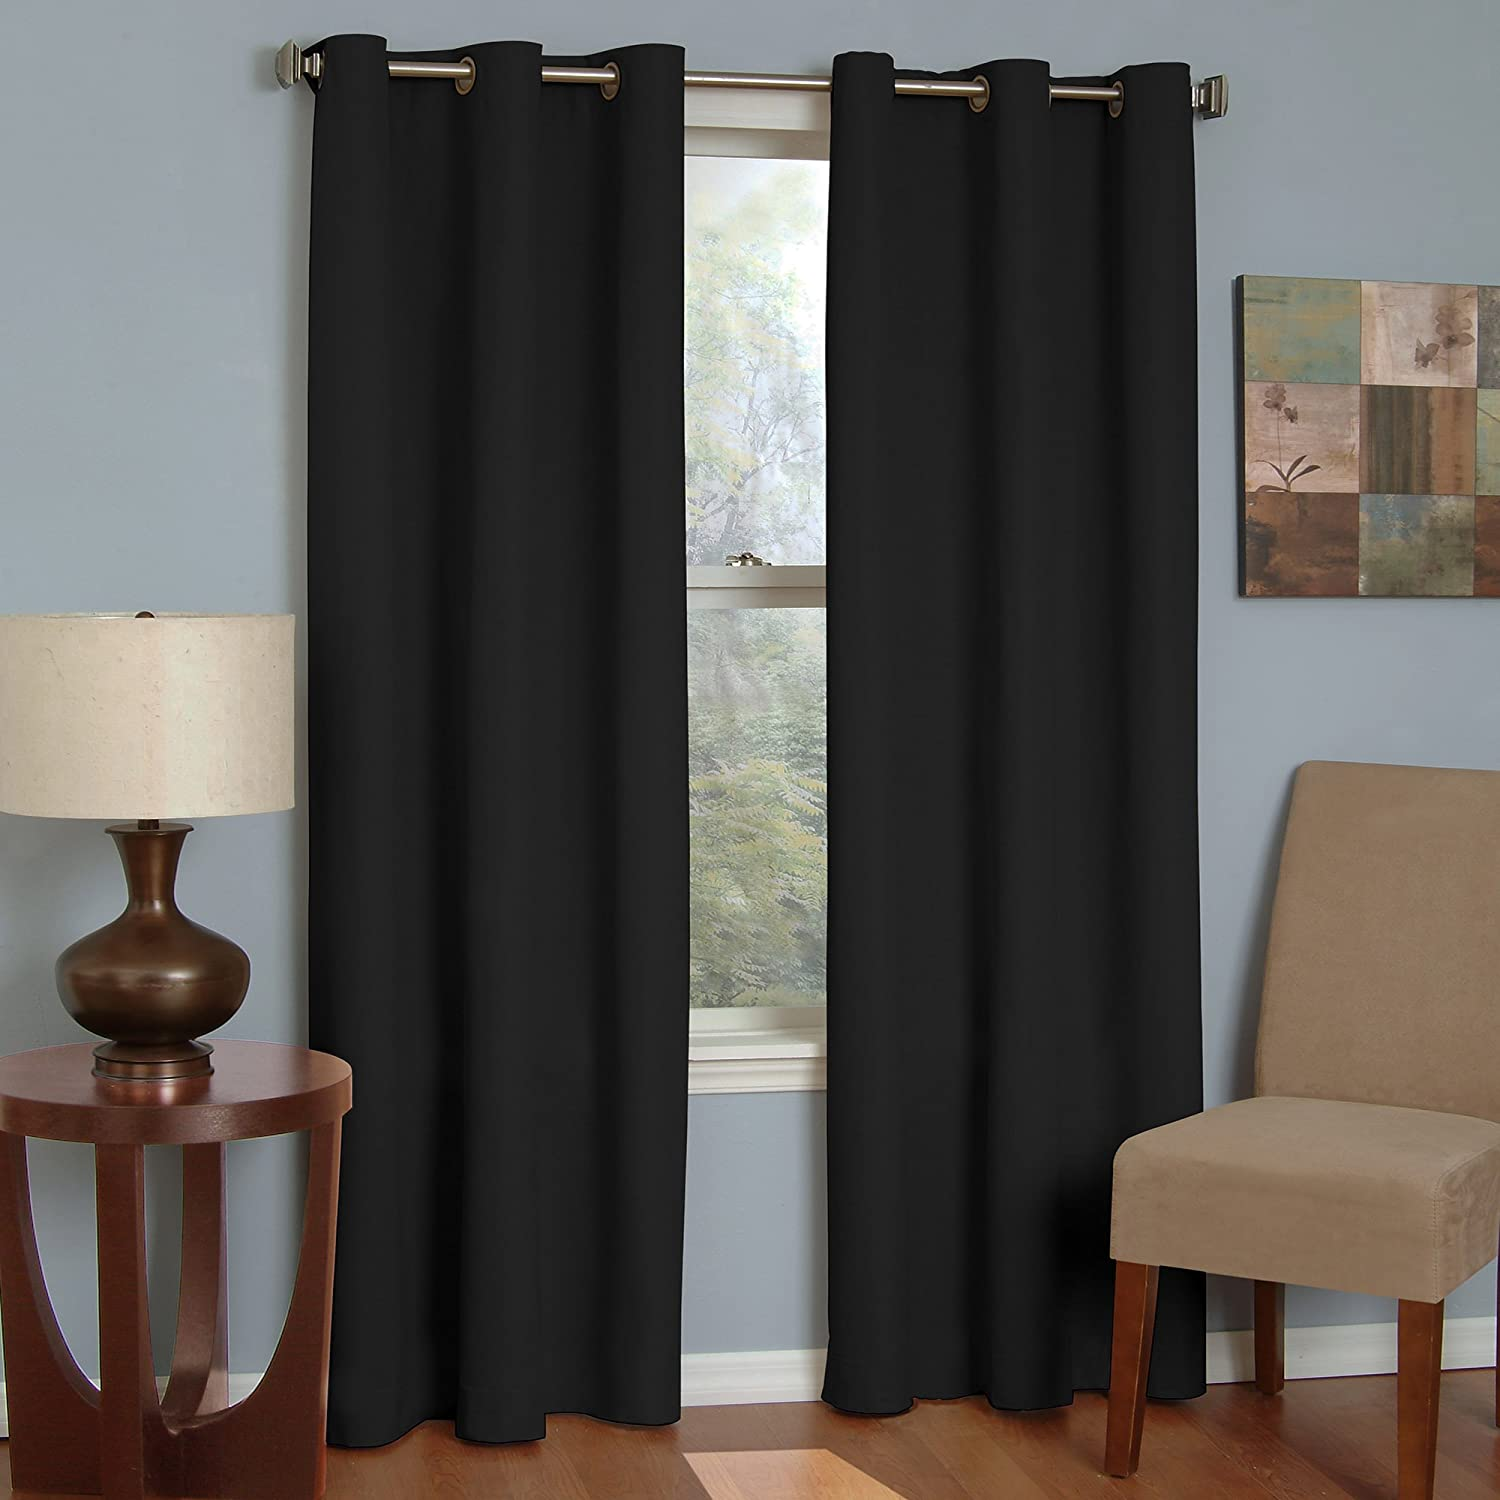 Attractive Amazon.com: Eclipse 10708042X063BK Microfiber 42 Inch By 63 Inch Grommet  Blackout Single Window Curtain Panel, Black: Home U0026 Kitchen